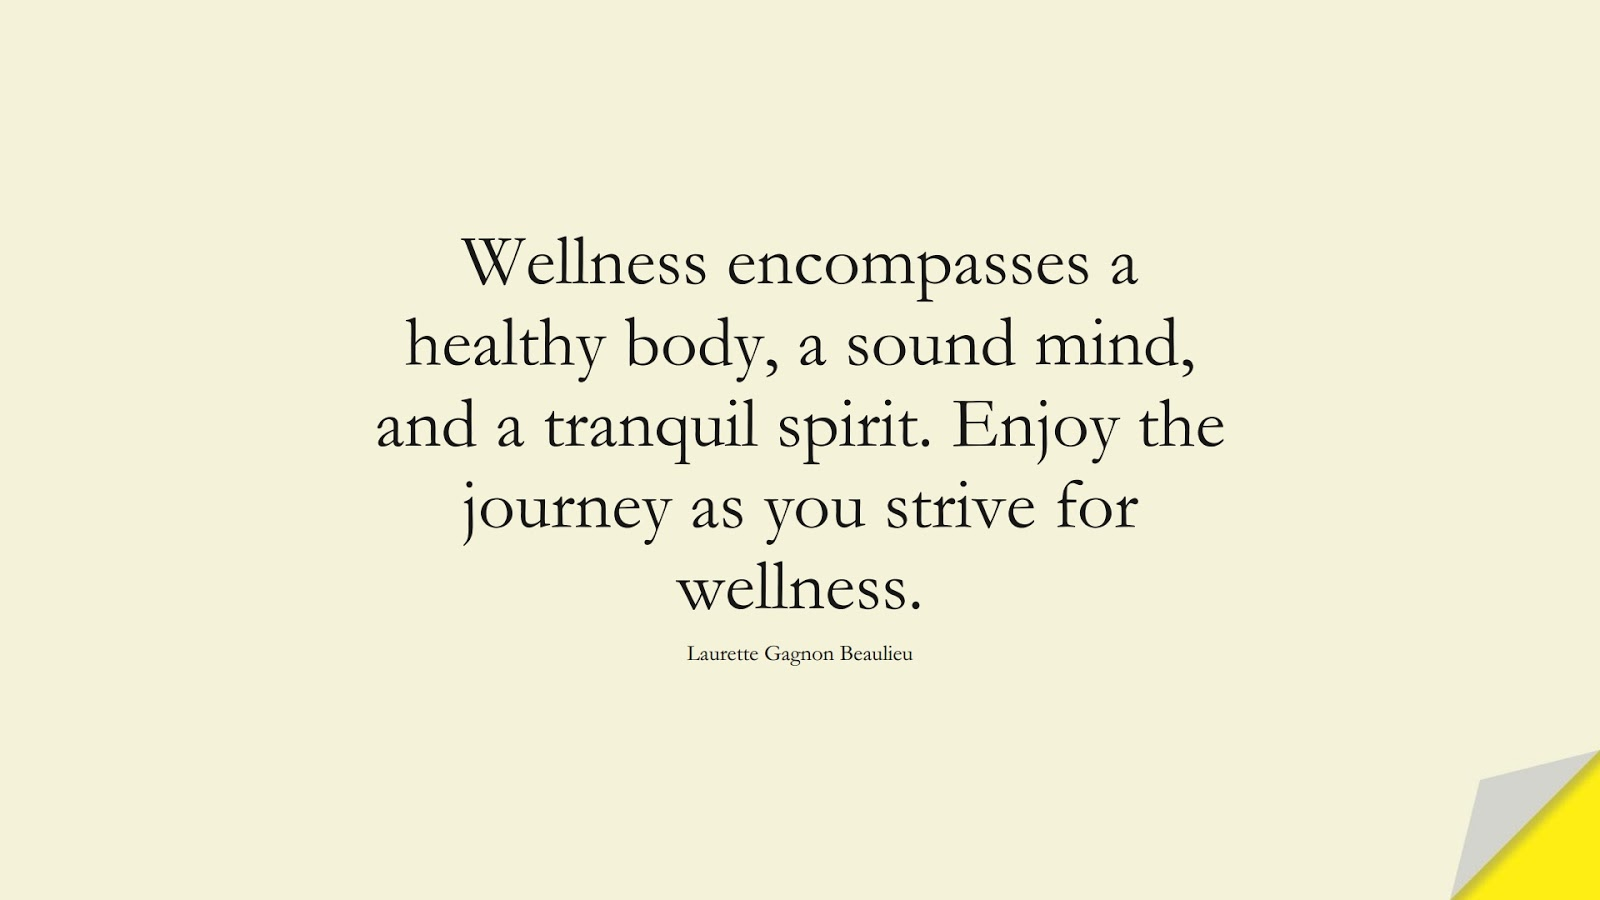 Wellness encompasses a healthy body, a sound mind, and a tranquil spirit. Enjoy the journey as you strive for wellness. (Laurette Gagnon Beaulieu);  #HealthQuotes